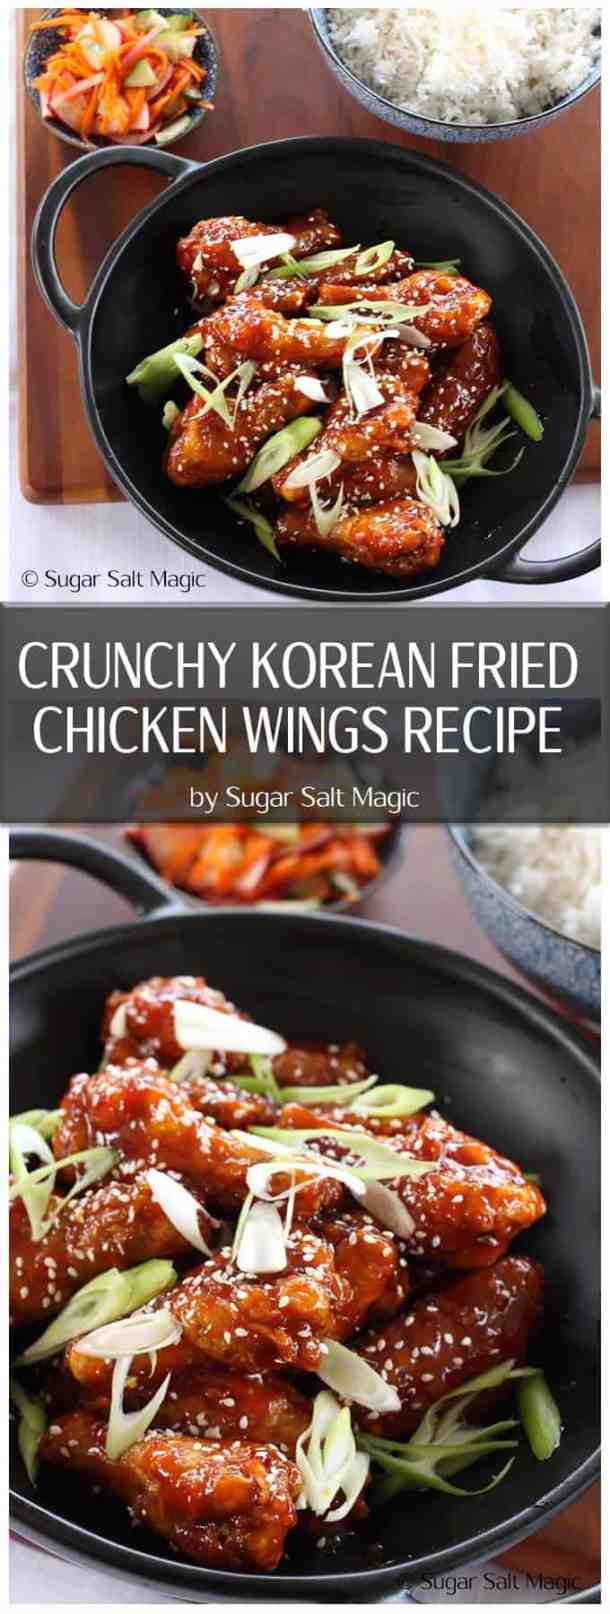 This Crunchy Korean Fried Chicken Wings recipe is a total winner. Affectionately known as KFC, they are fried until crispy, then slathered in a thick,sweet andspicy sauce. #koreanfriedchicken #koreanchicken